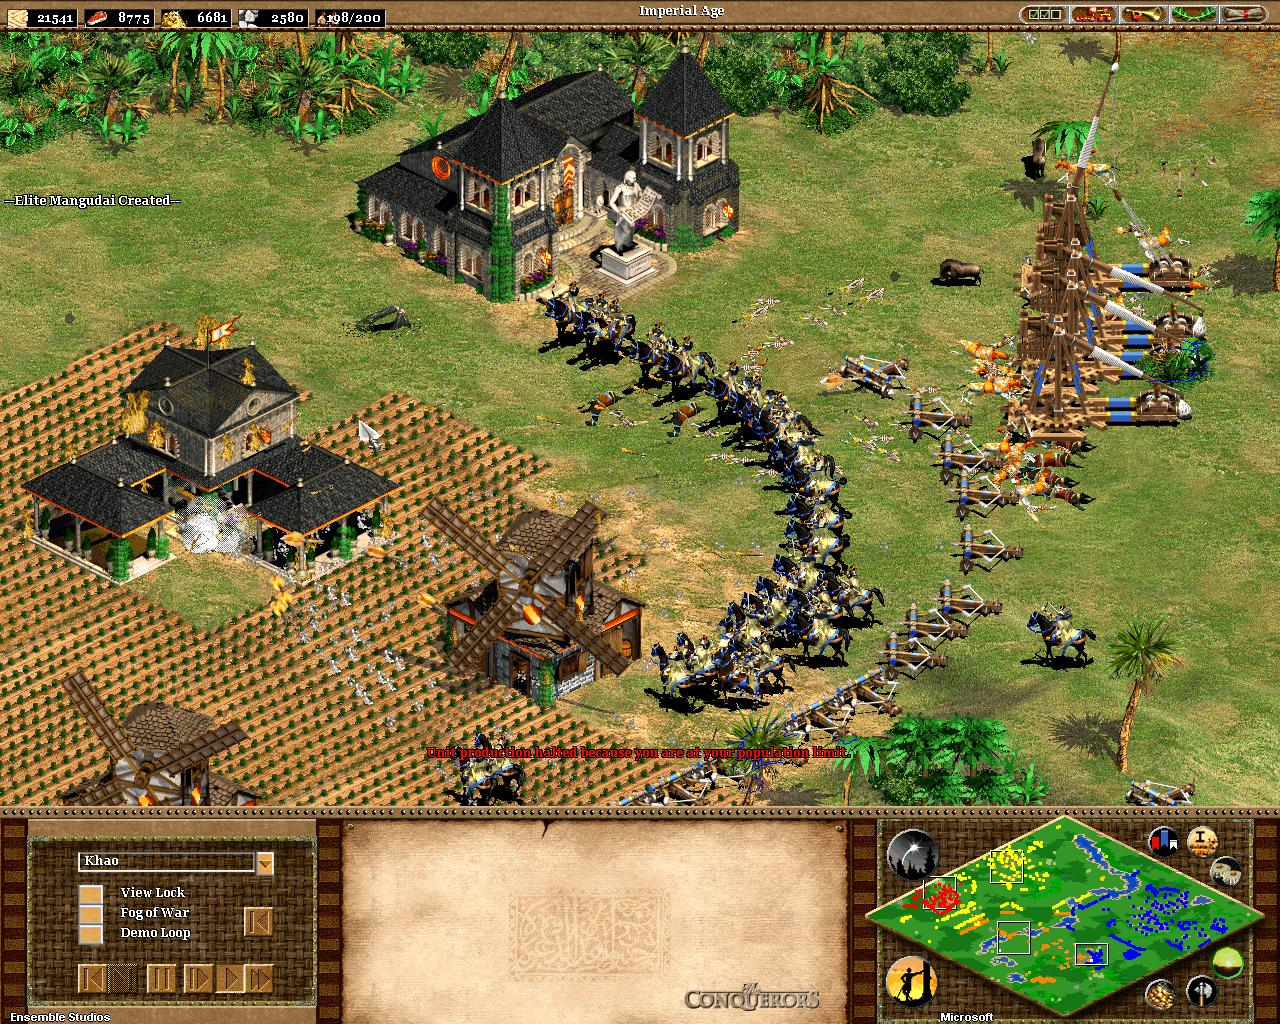 age-of-empires-II-the-conquerors-expansion-screenshots-pics.jpg